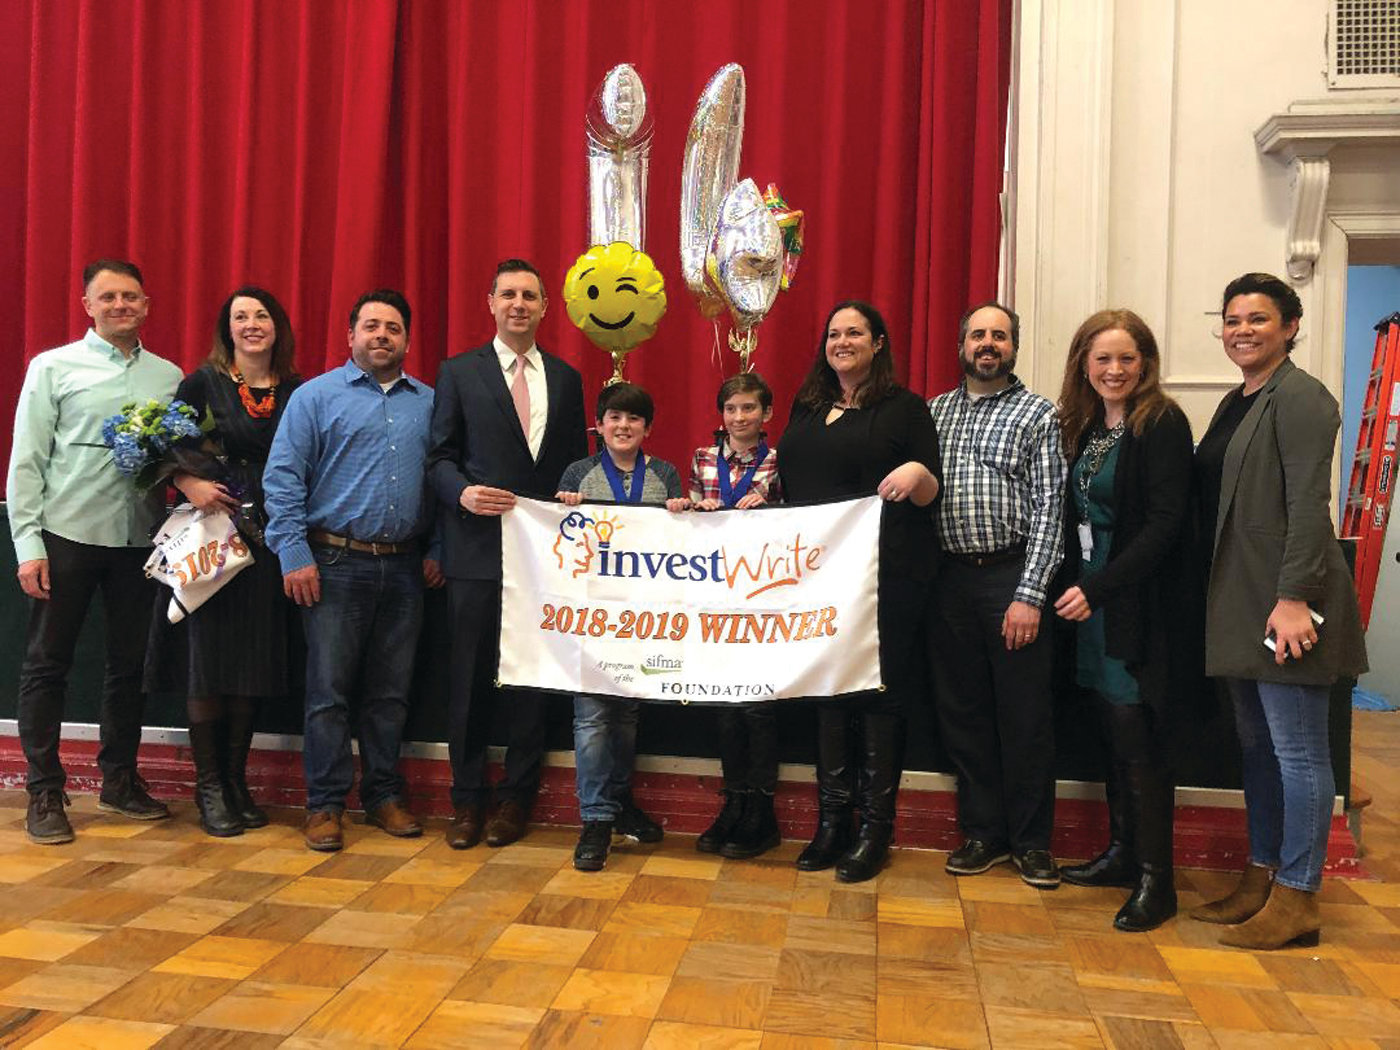 SAVVY INVESTORS: There were two InvestWrite essay contest winners from Rhodes Elementary School this year. Fifth-grade students Livia Leary and James Conway and their teacher, James Gemma, were all honored during a ceremony that has become an annual tradition at Rhodes.